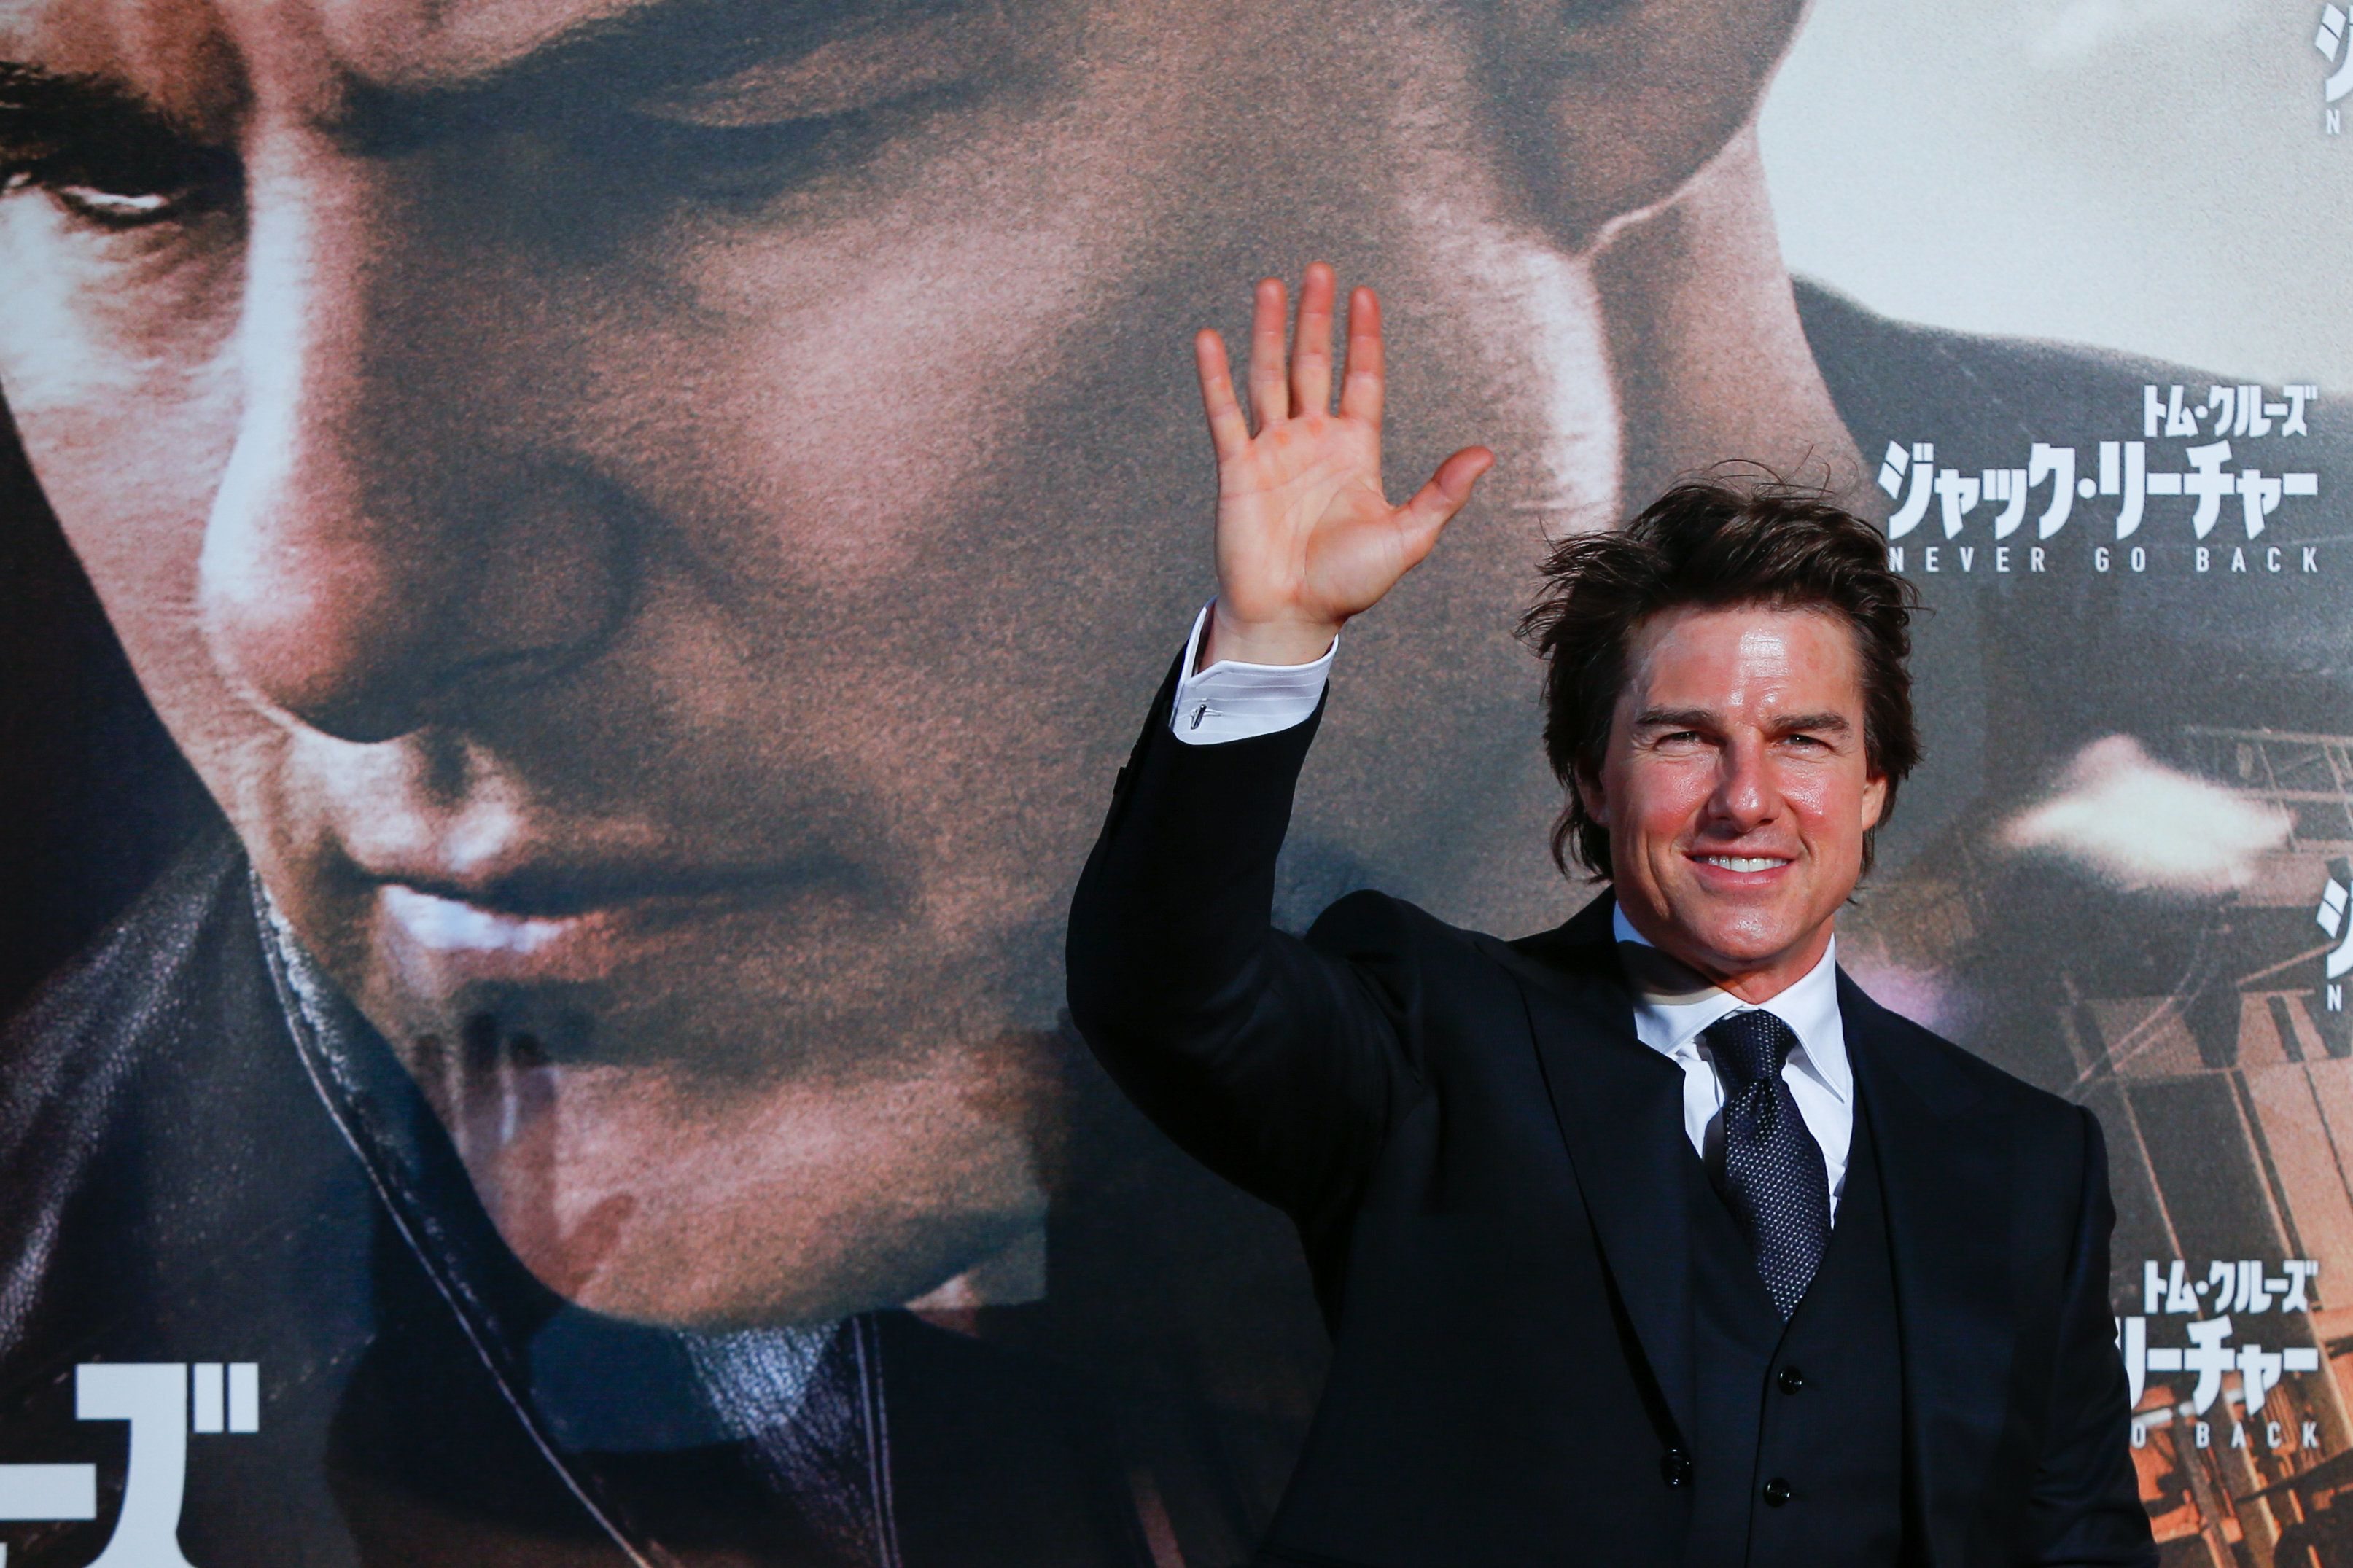 TOKYO, JAPAN - NOVEMBER 09:  Tom Cruise attends the Tokyo Premiere of the Paramount Pictures' 'Jack Reacher: Never Go Back' on November 9, 2016 at Toho Cinemas Roppongi Hills on November 9, 2016 in Tokyo, Japan.  (Photo by Ken Ishii/Getty Images for Paramount Pictures)